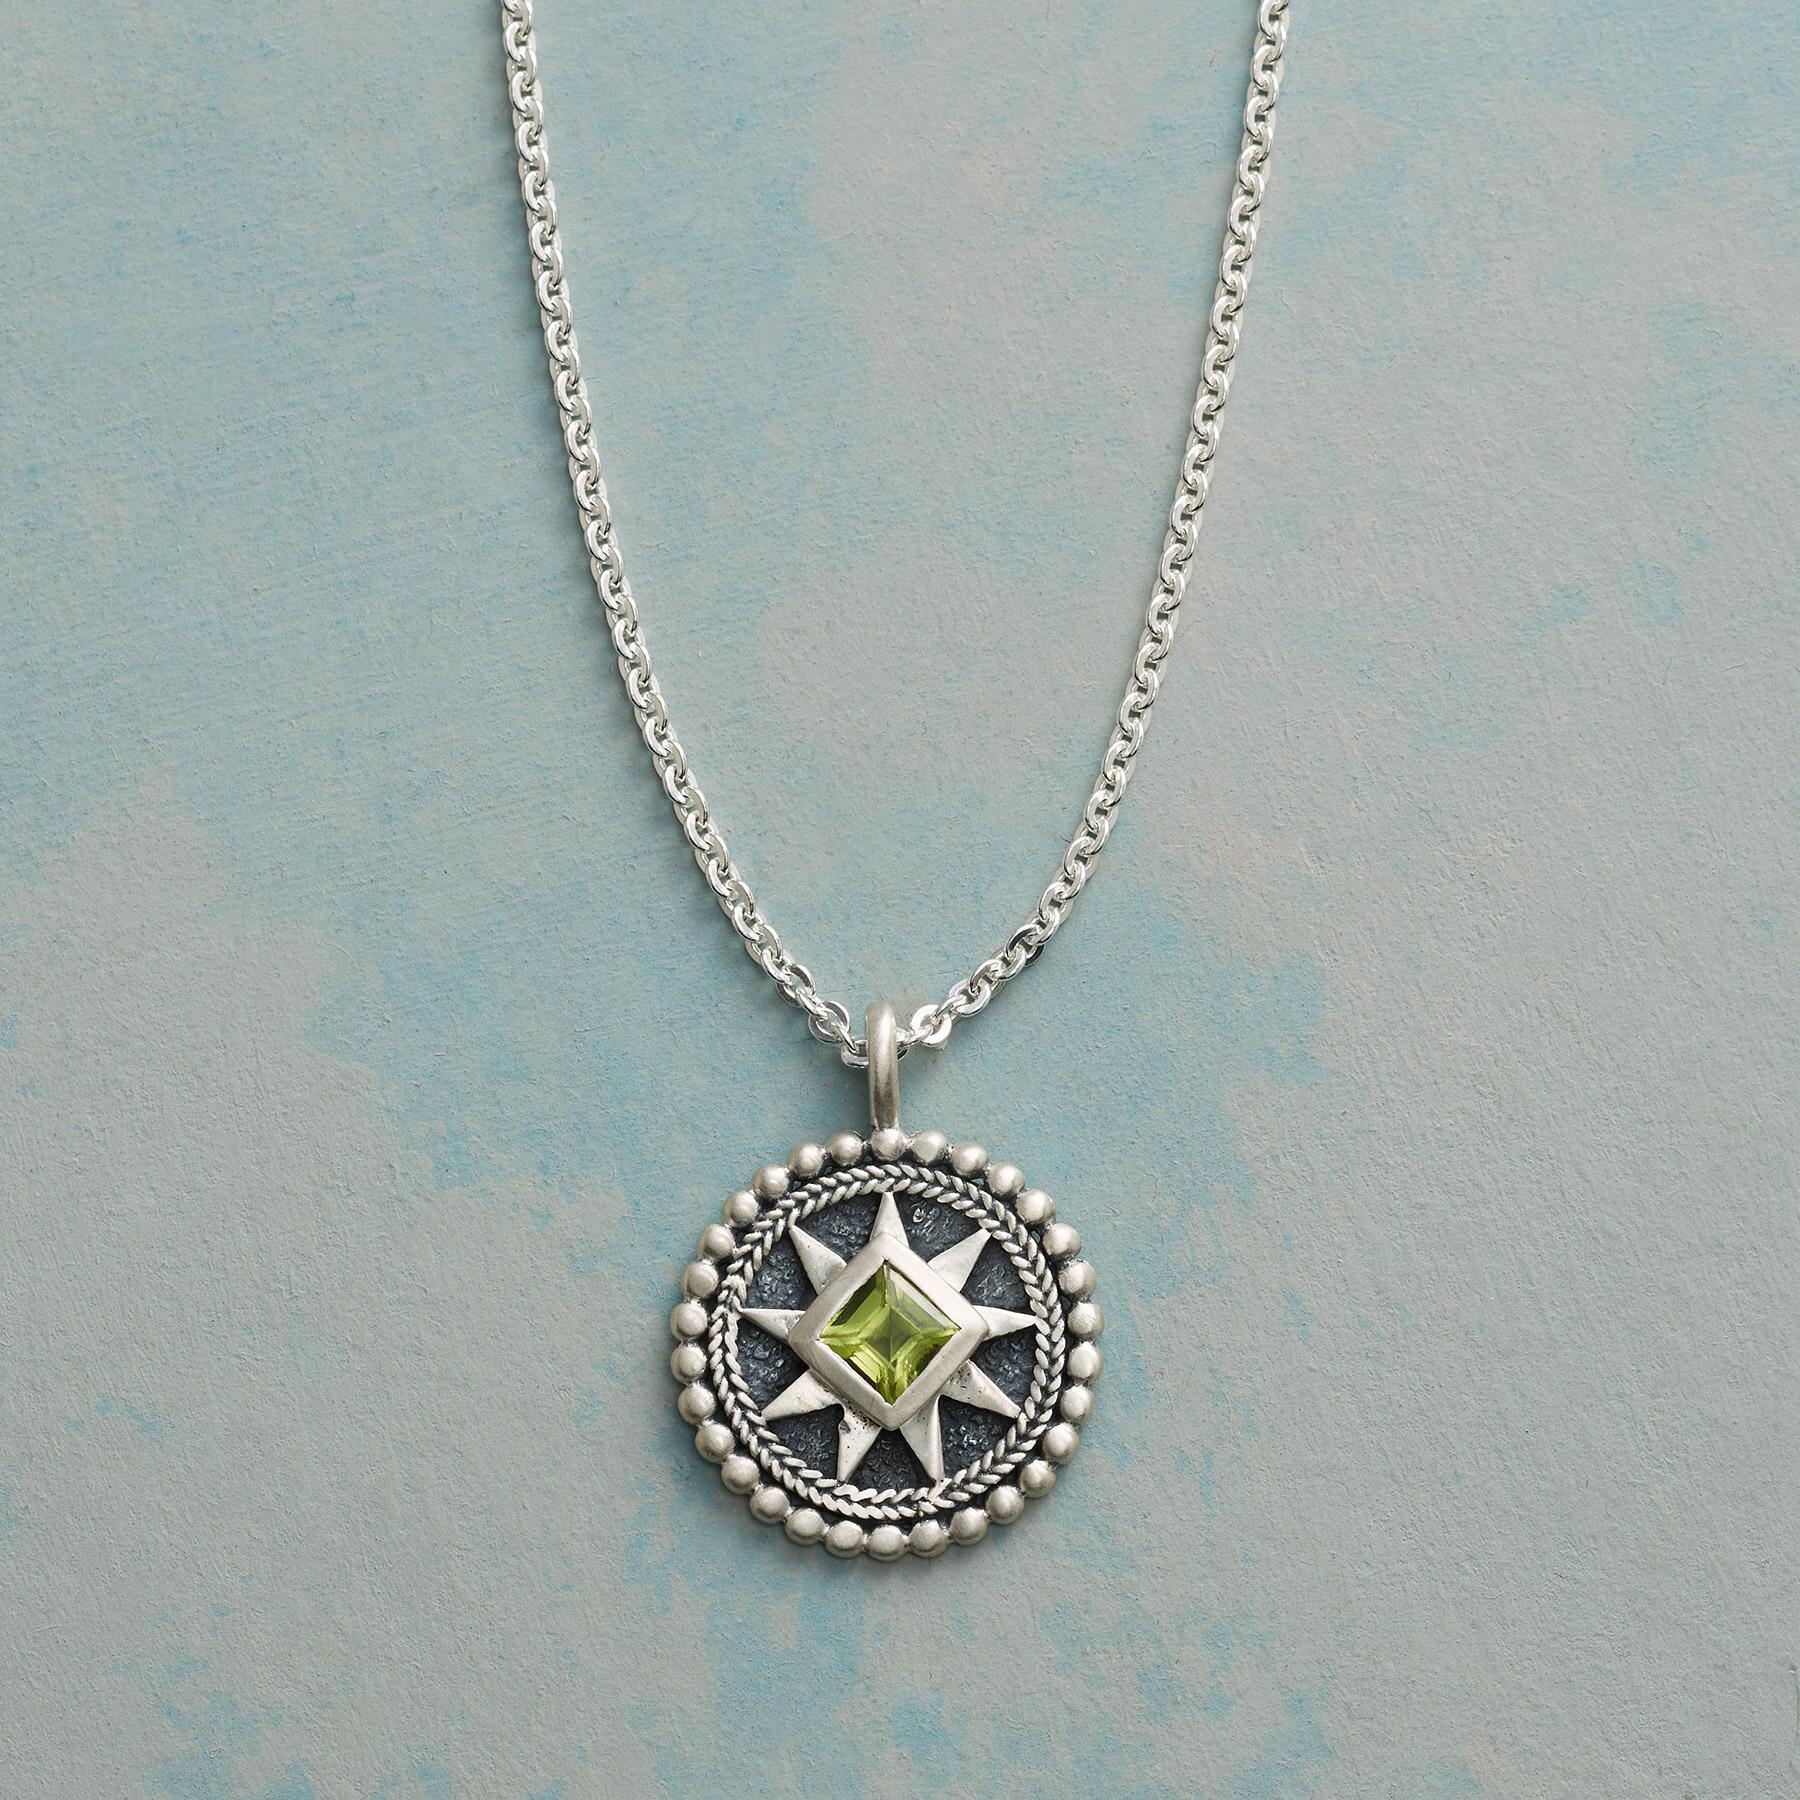 BRIGHT STAR BIRTHSTONE NECKLACE: View 1